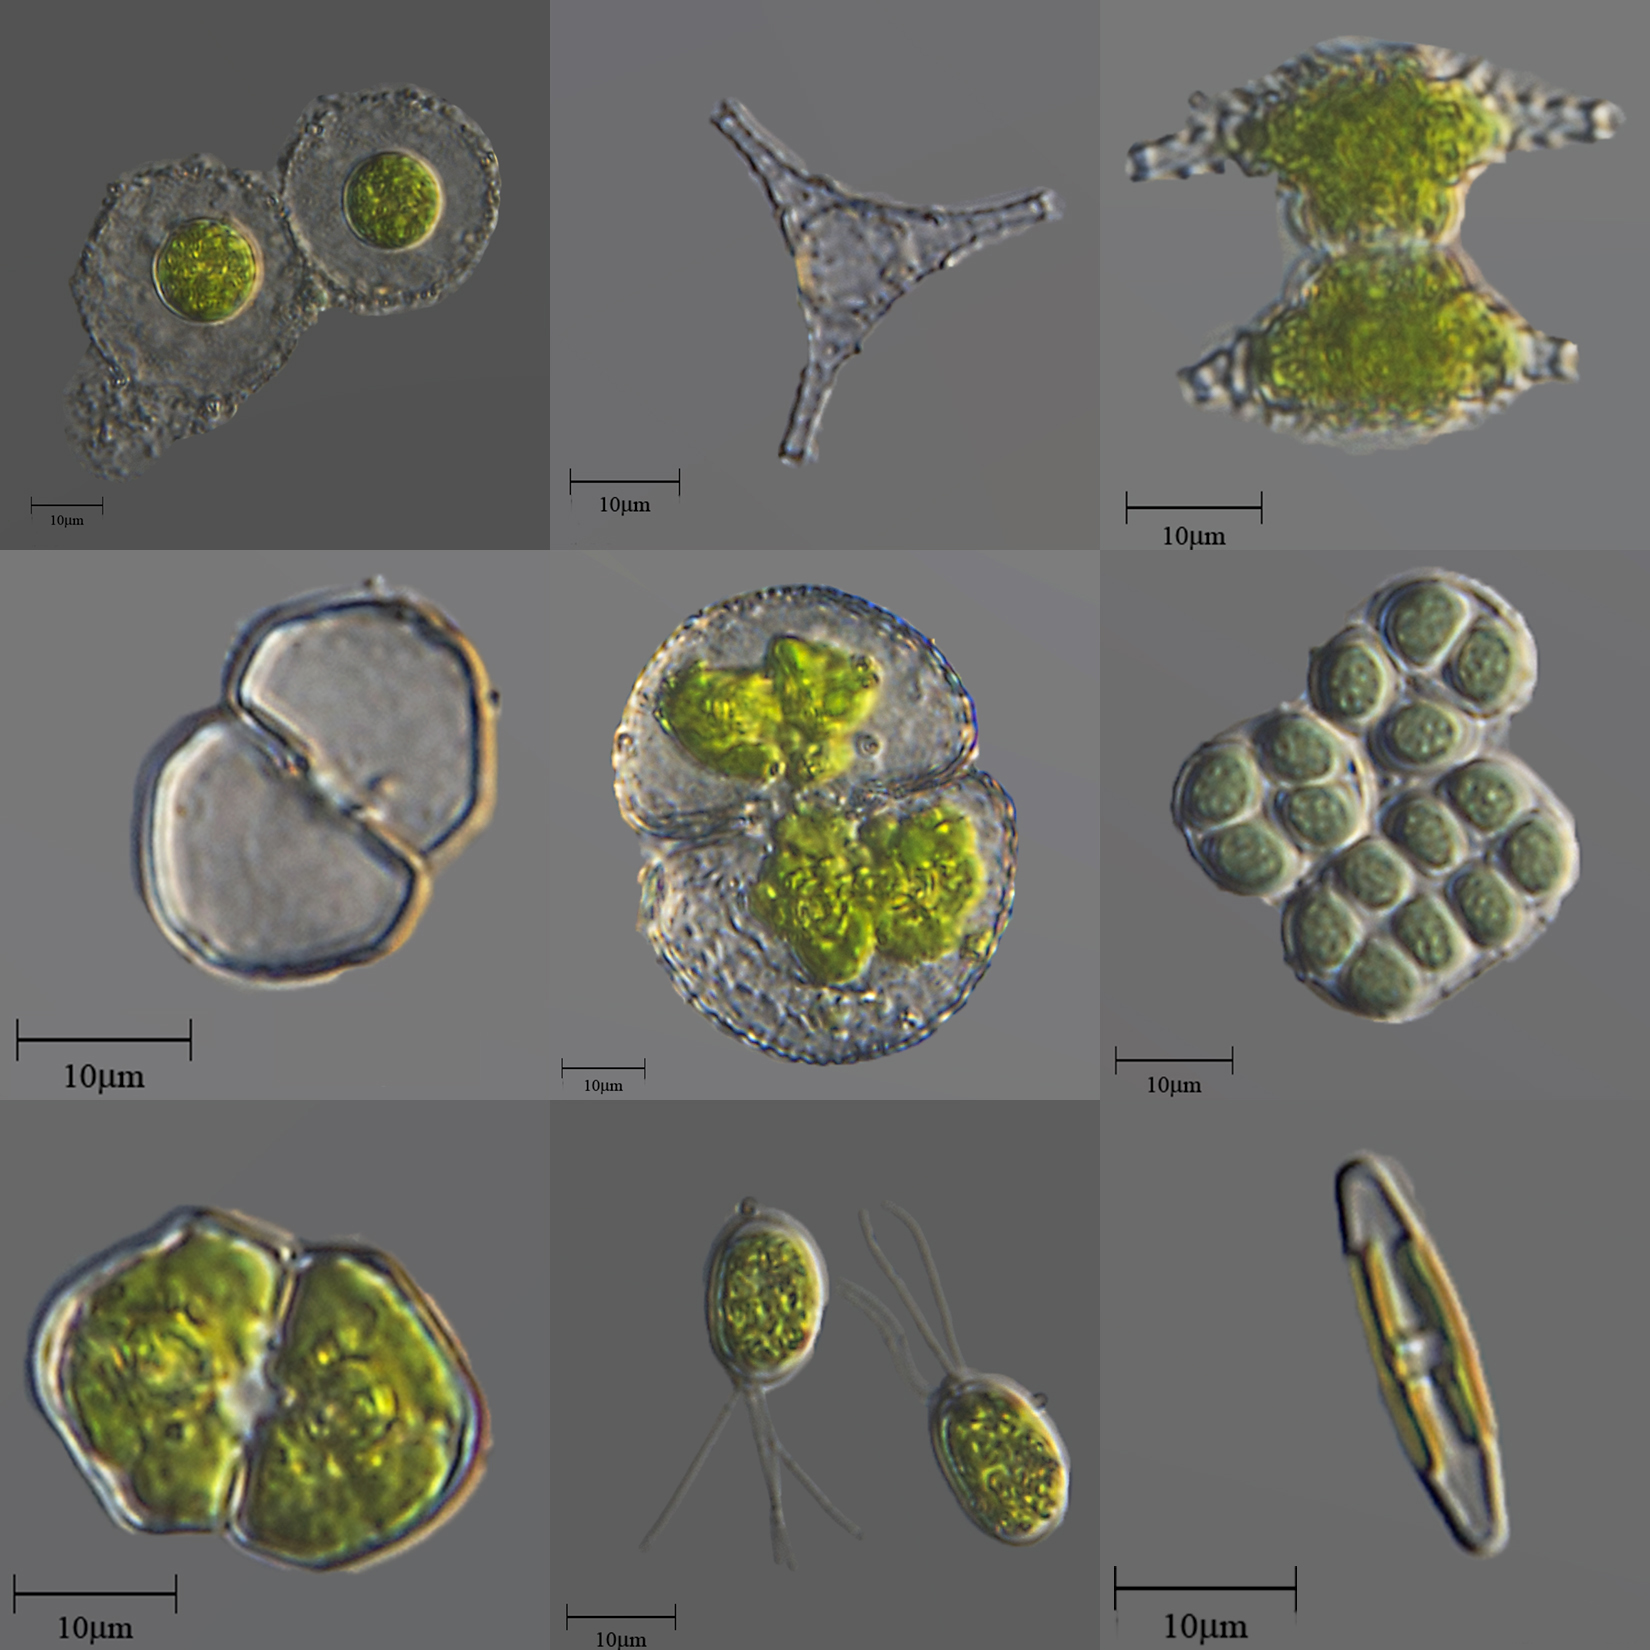 Images of microscopic organisms or cells.